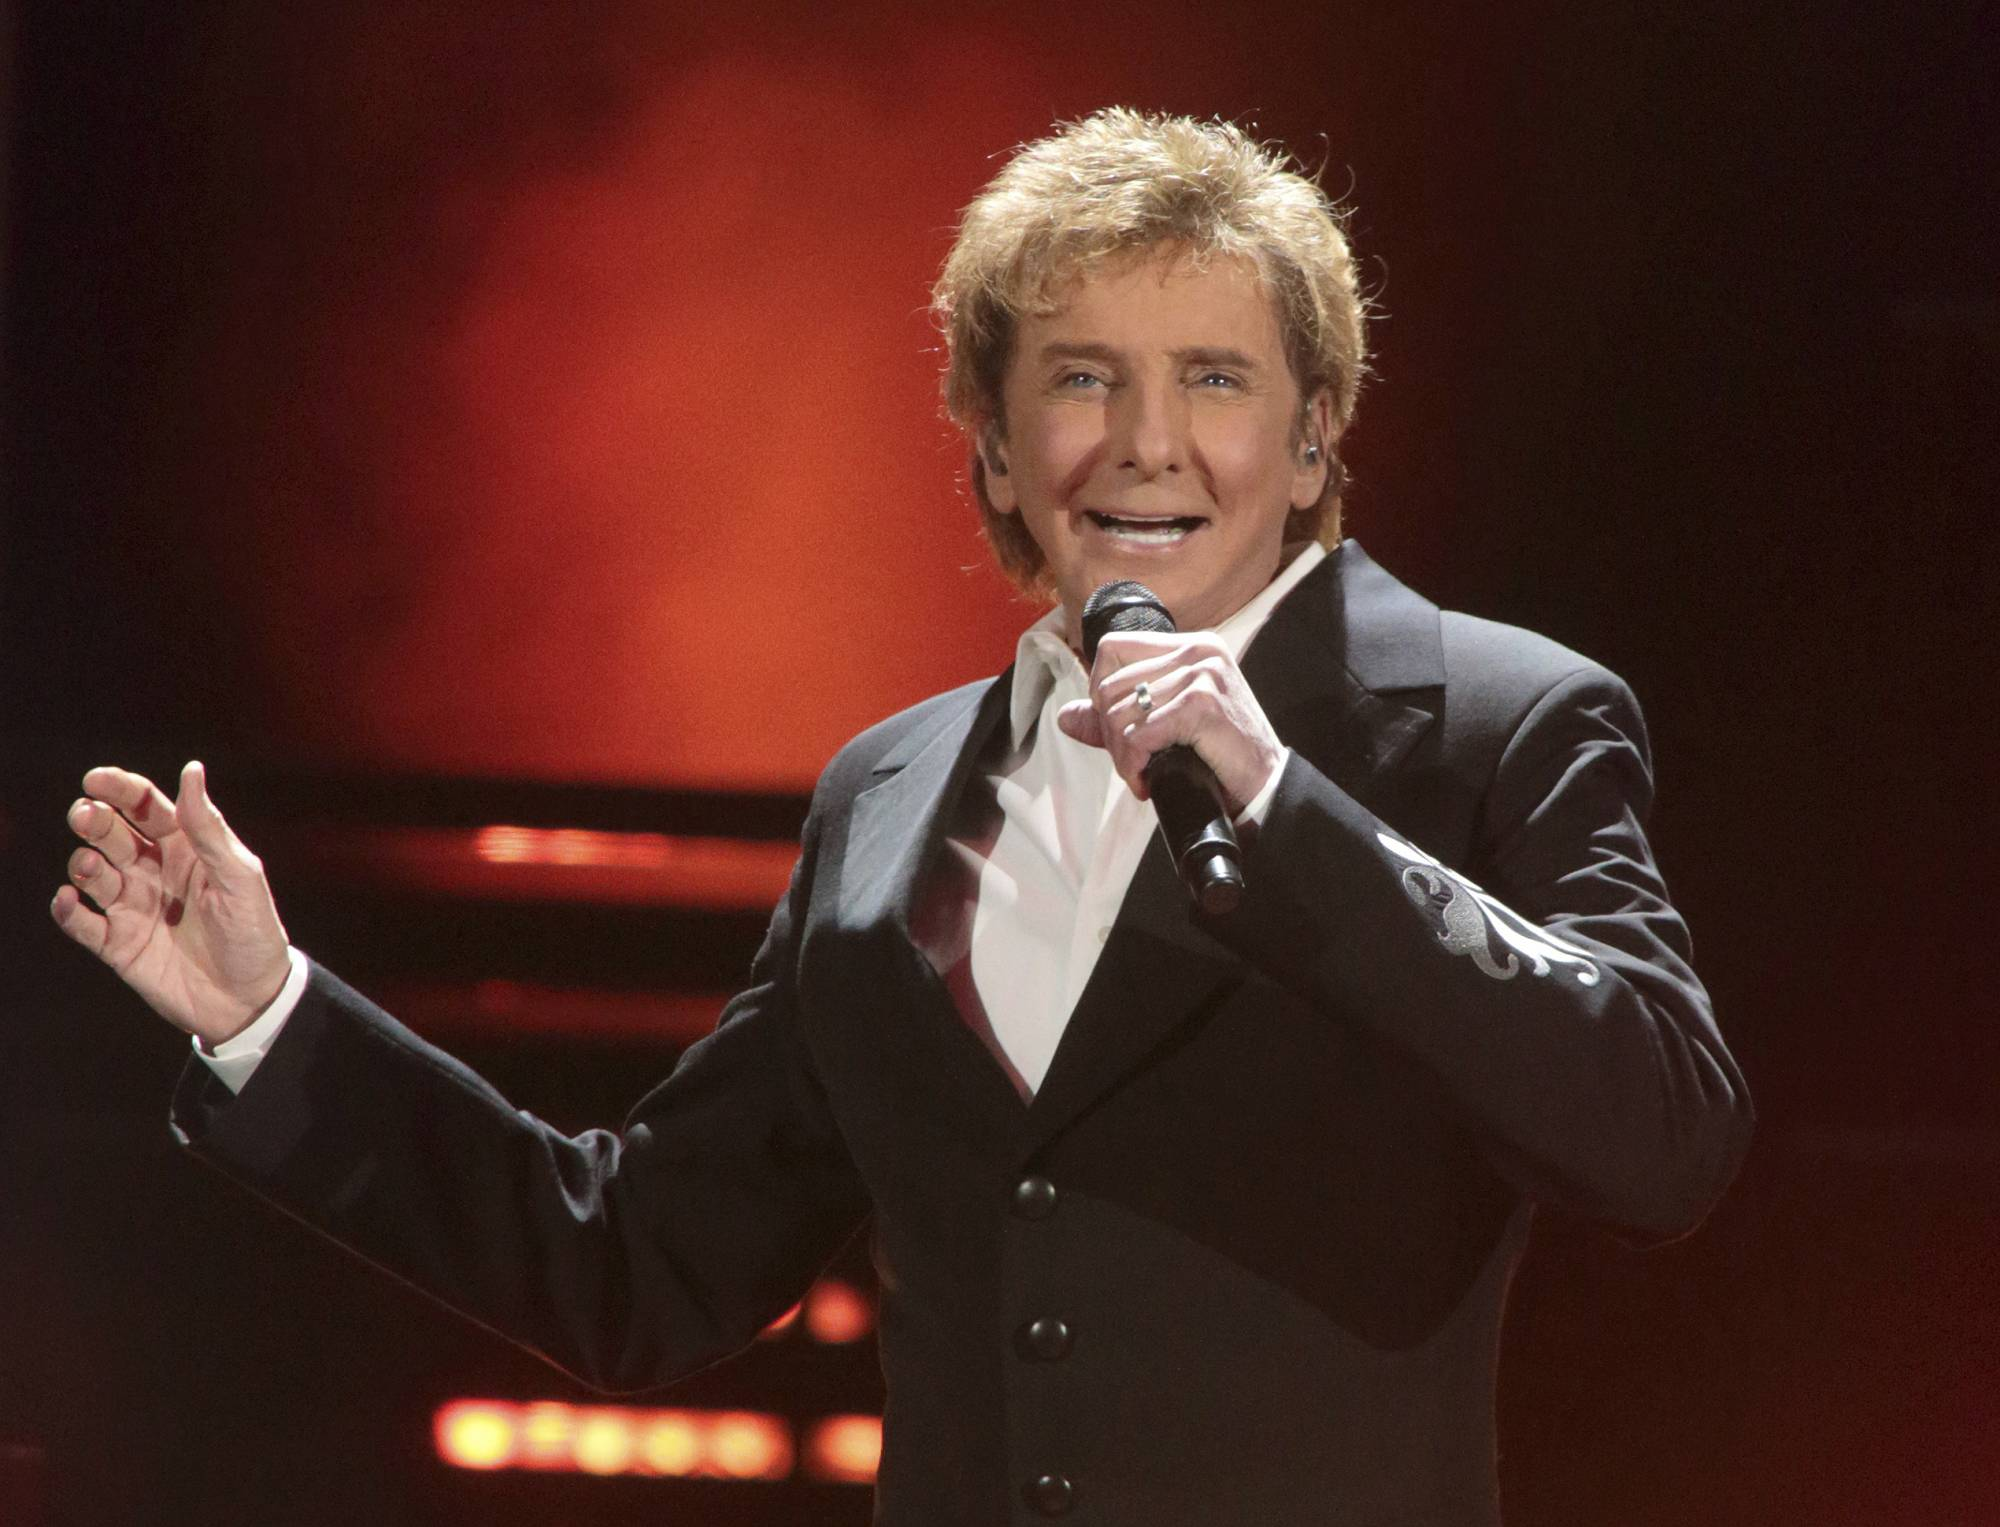 ... Barry Manilow says he kept his sexuality secret for 'fans'